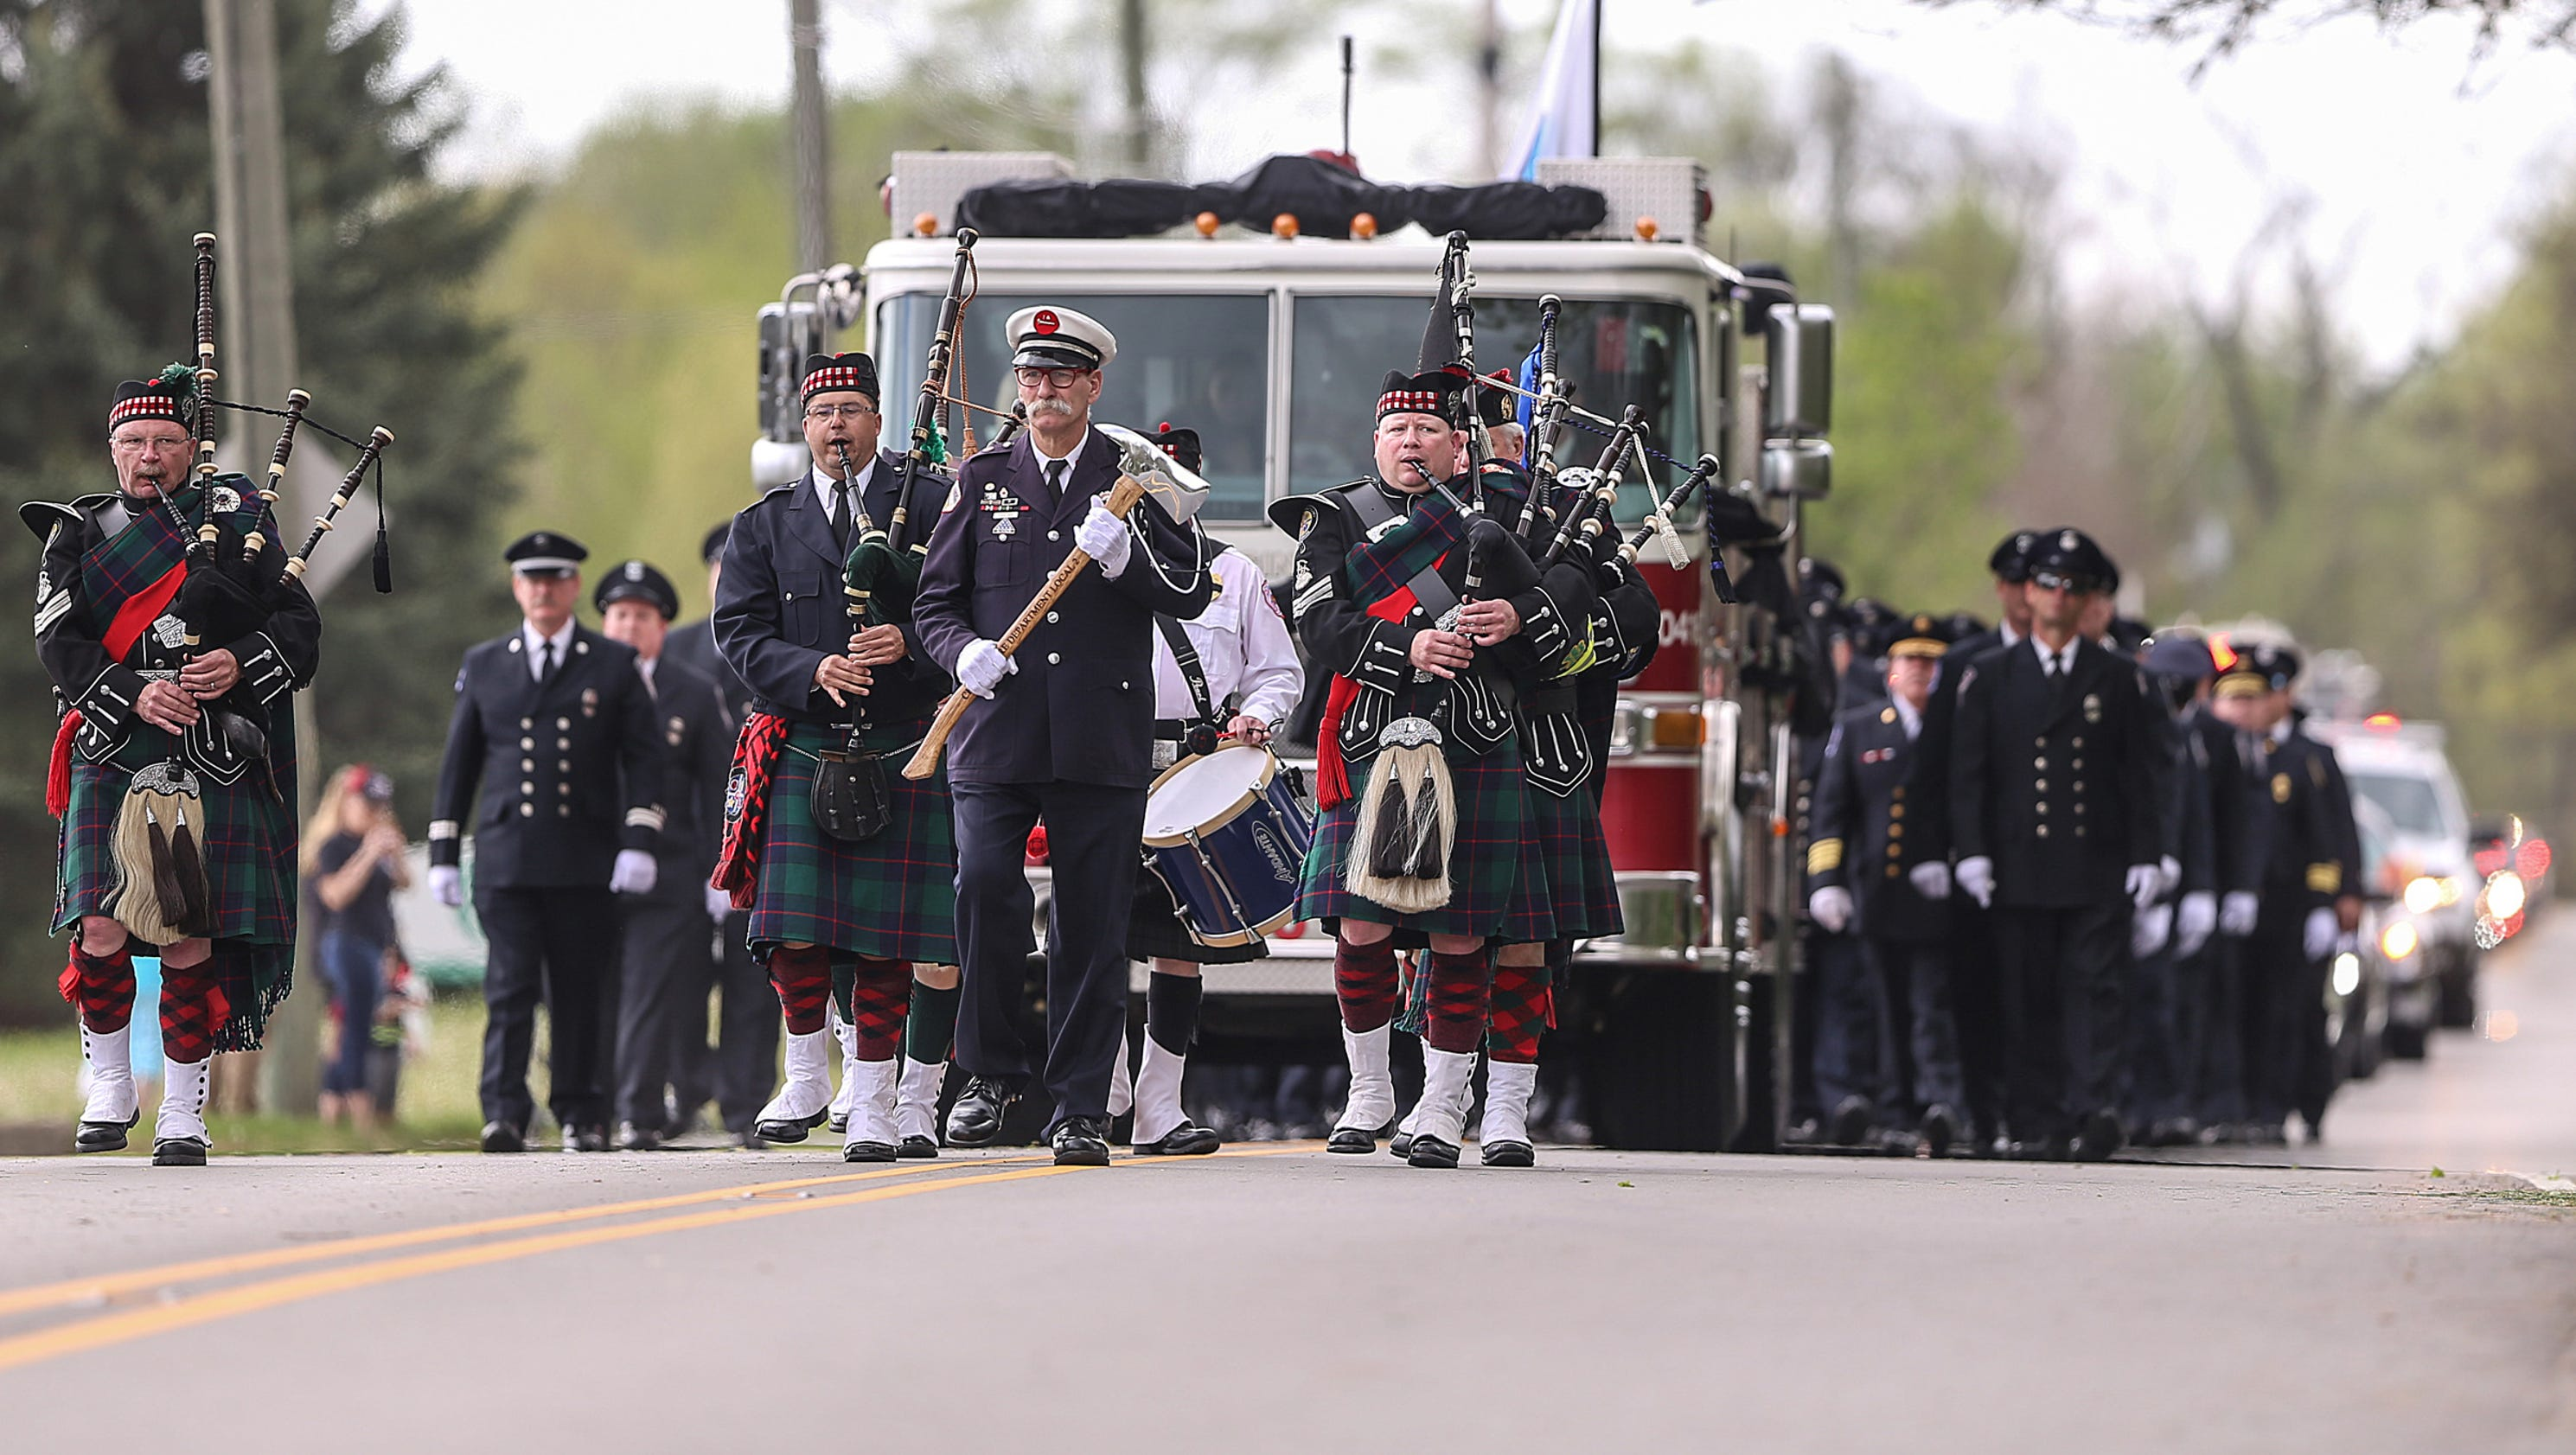 Photos Funeral Procession For Lawrence Firefighter Passes